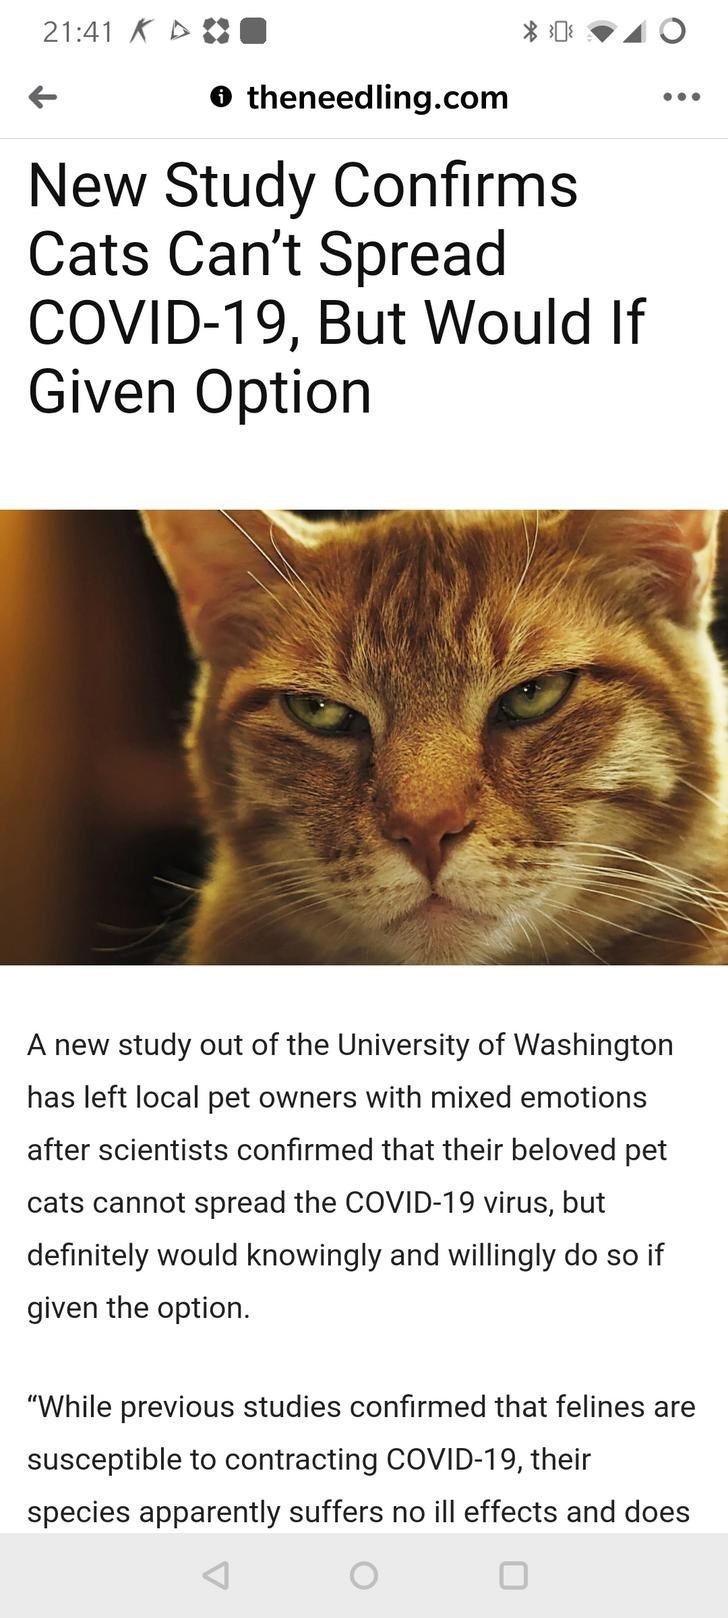 New Study Confirms Cats Can't Spread COVID-19, But Would If Given Option A new study out of the University of Washington has left local pet owners with mixed emotions after scientists confirmed that their beloved pet cats cannot spread the COVID-19 virus, but definitely would knowingly and willingly do so if given the option.